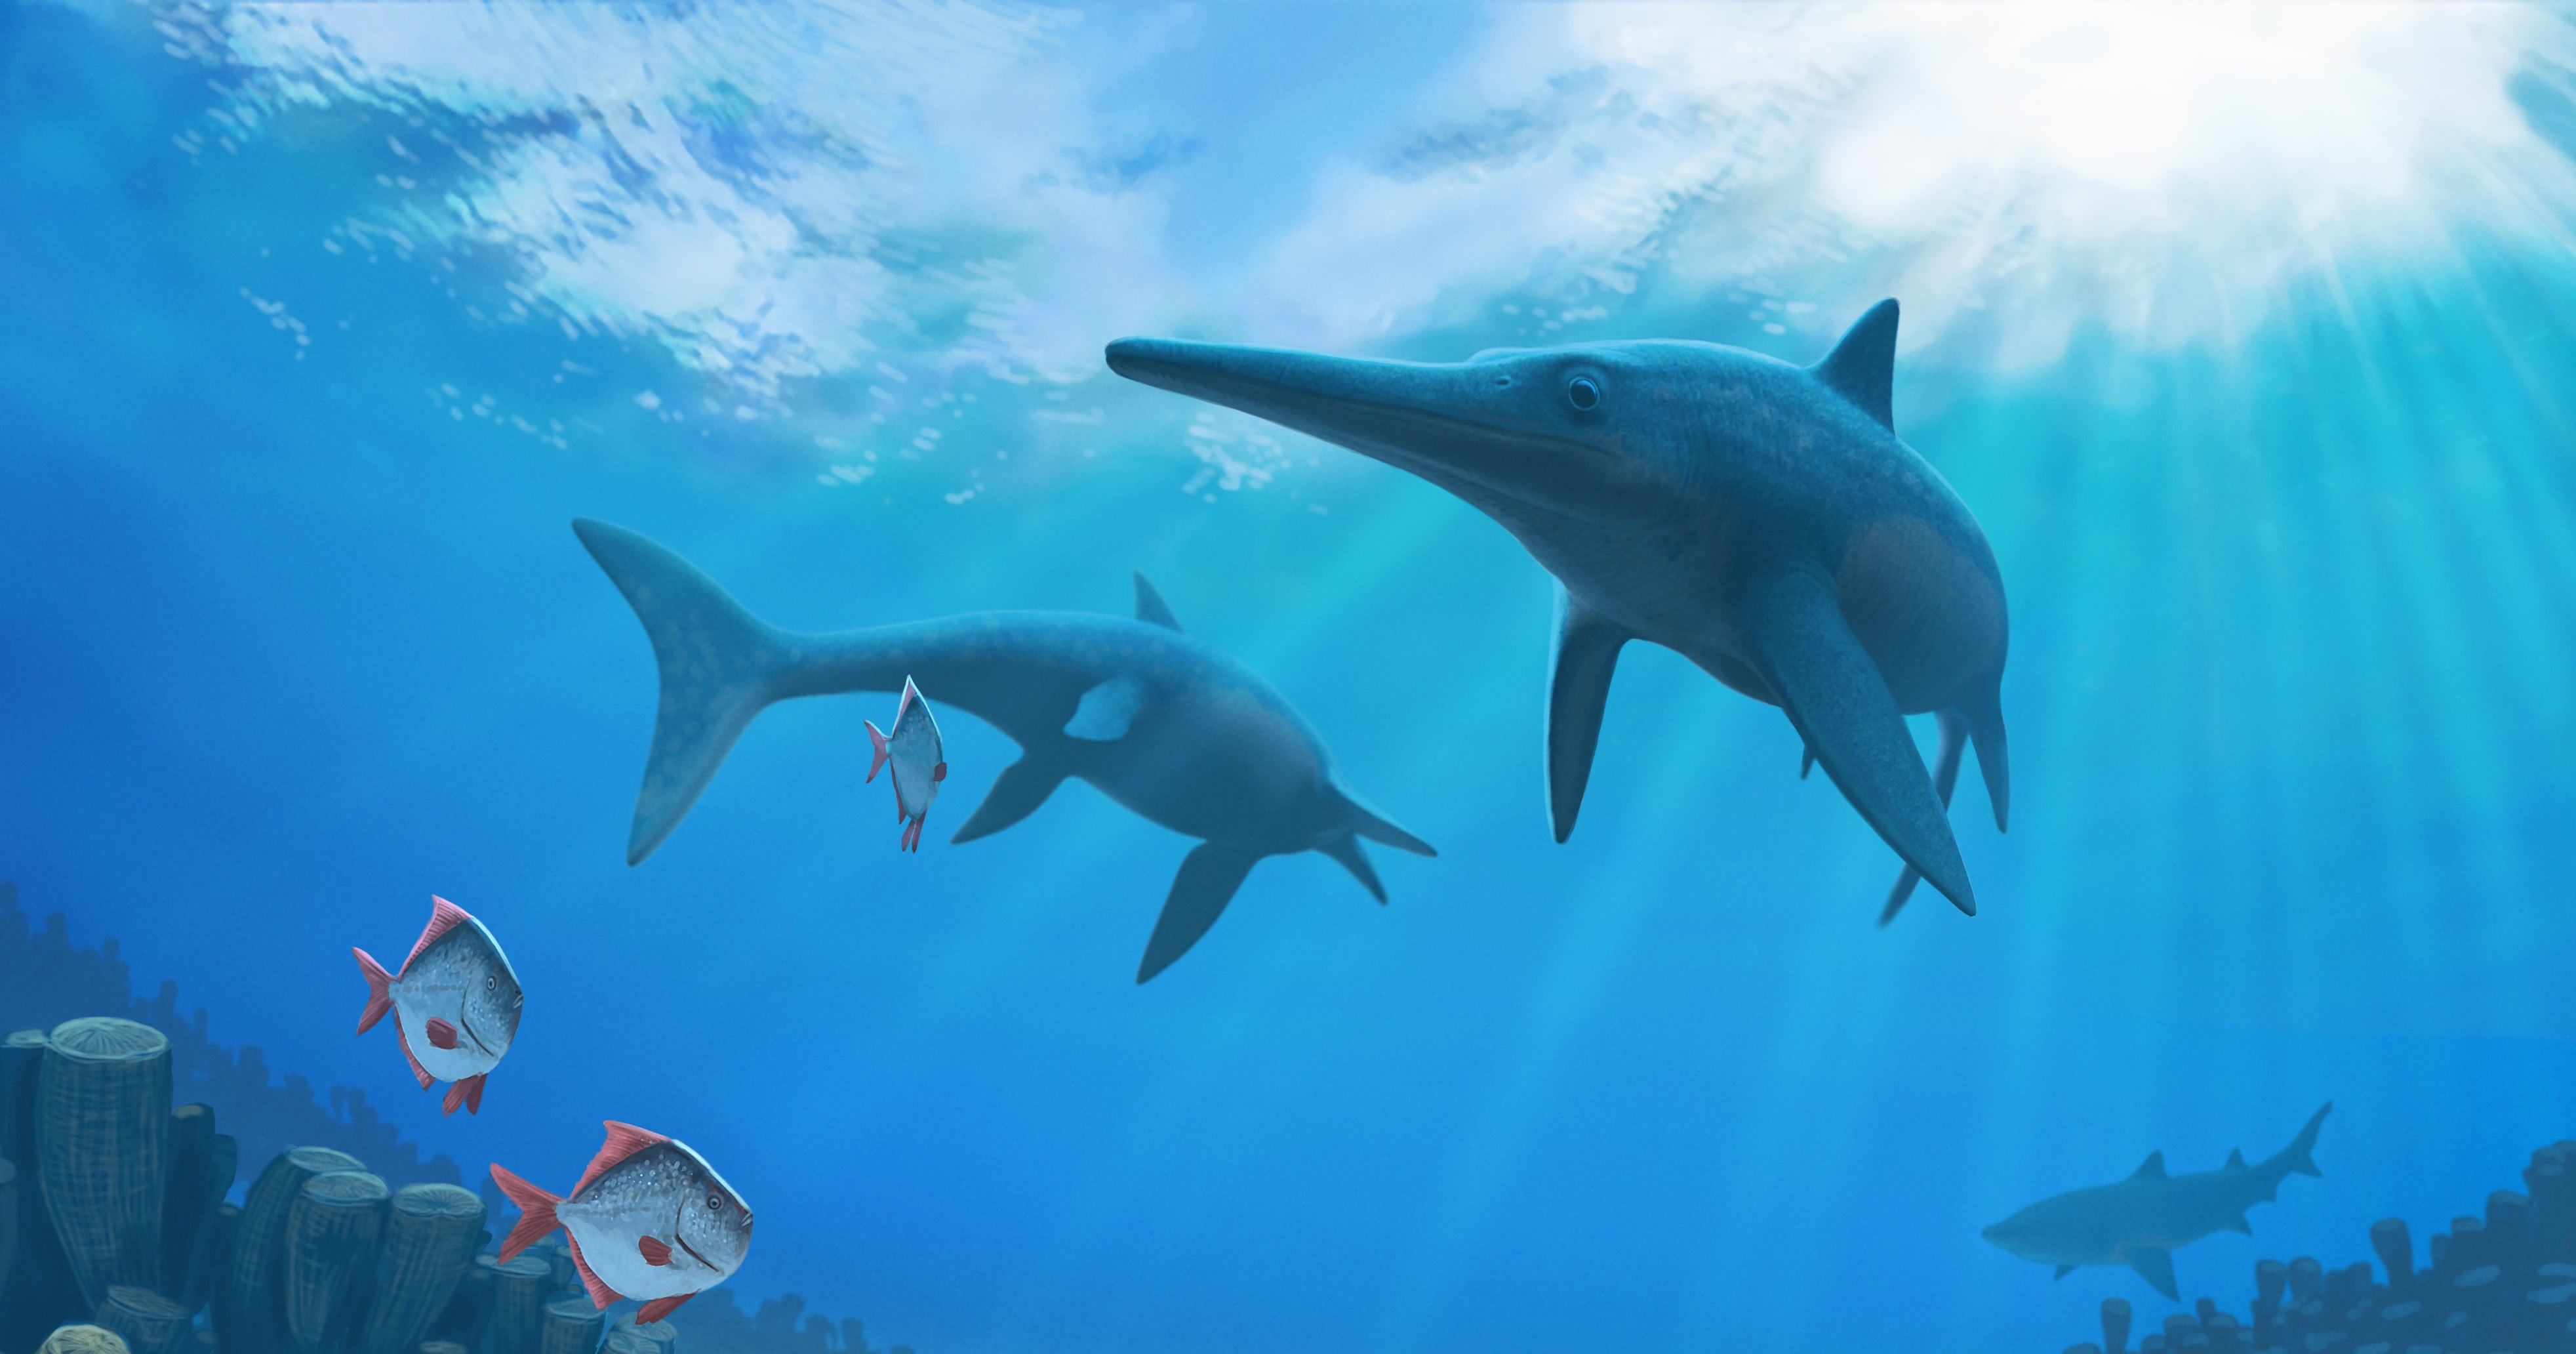 Dolphins Had A Jurassic-Era Reptile Twin Featuring Blubber And Warm Blood